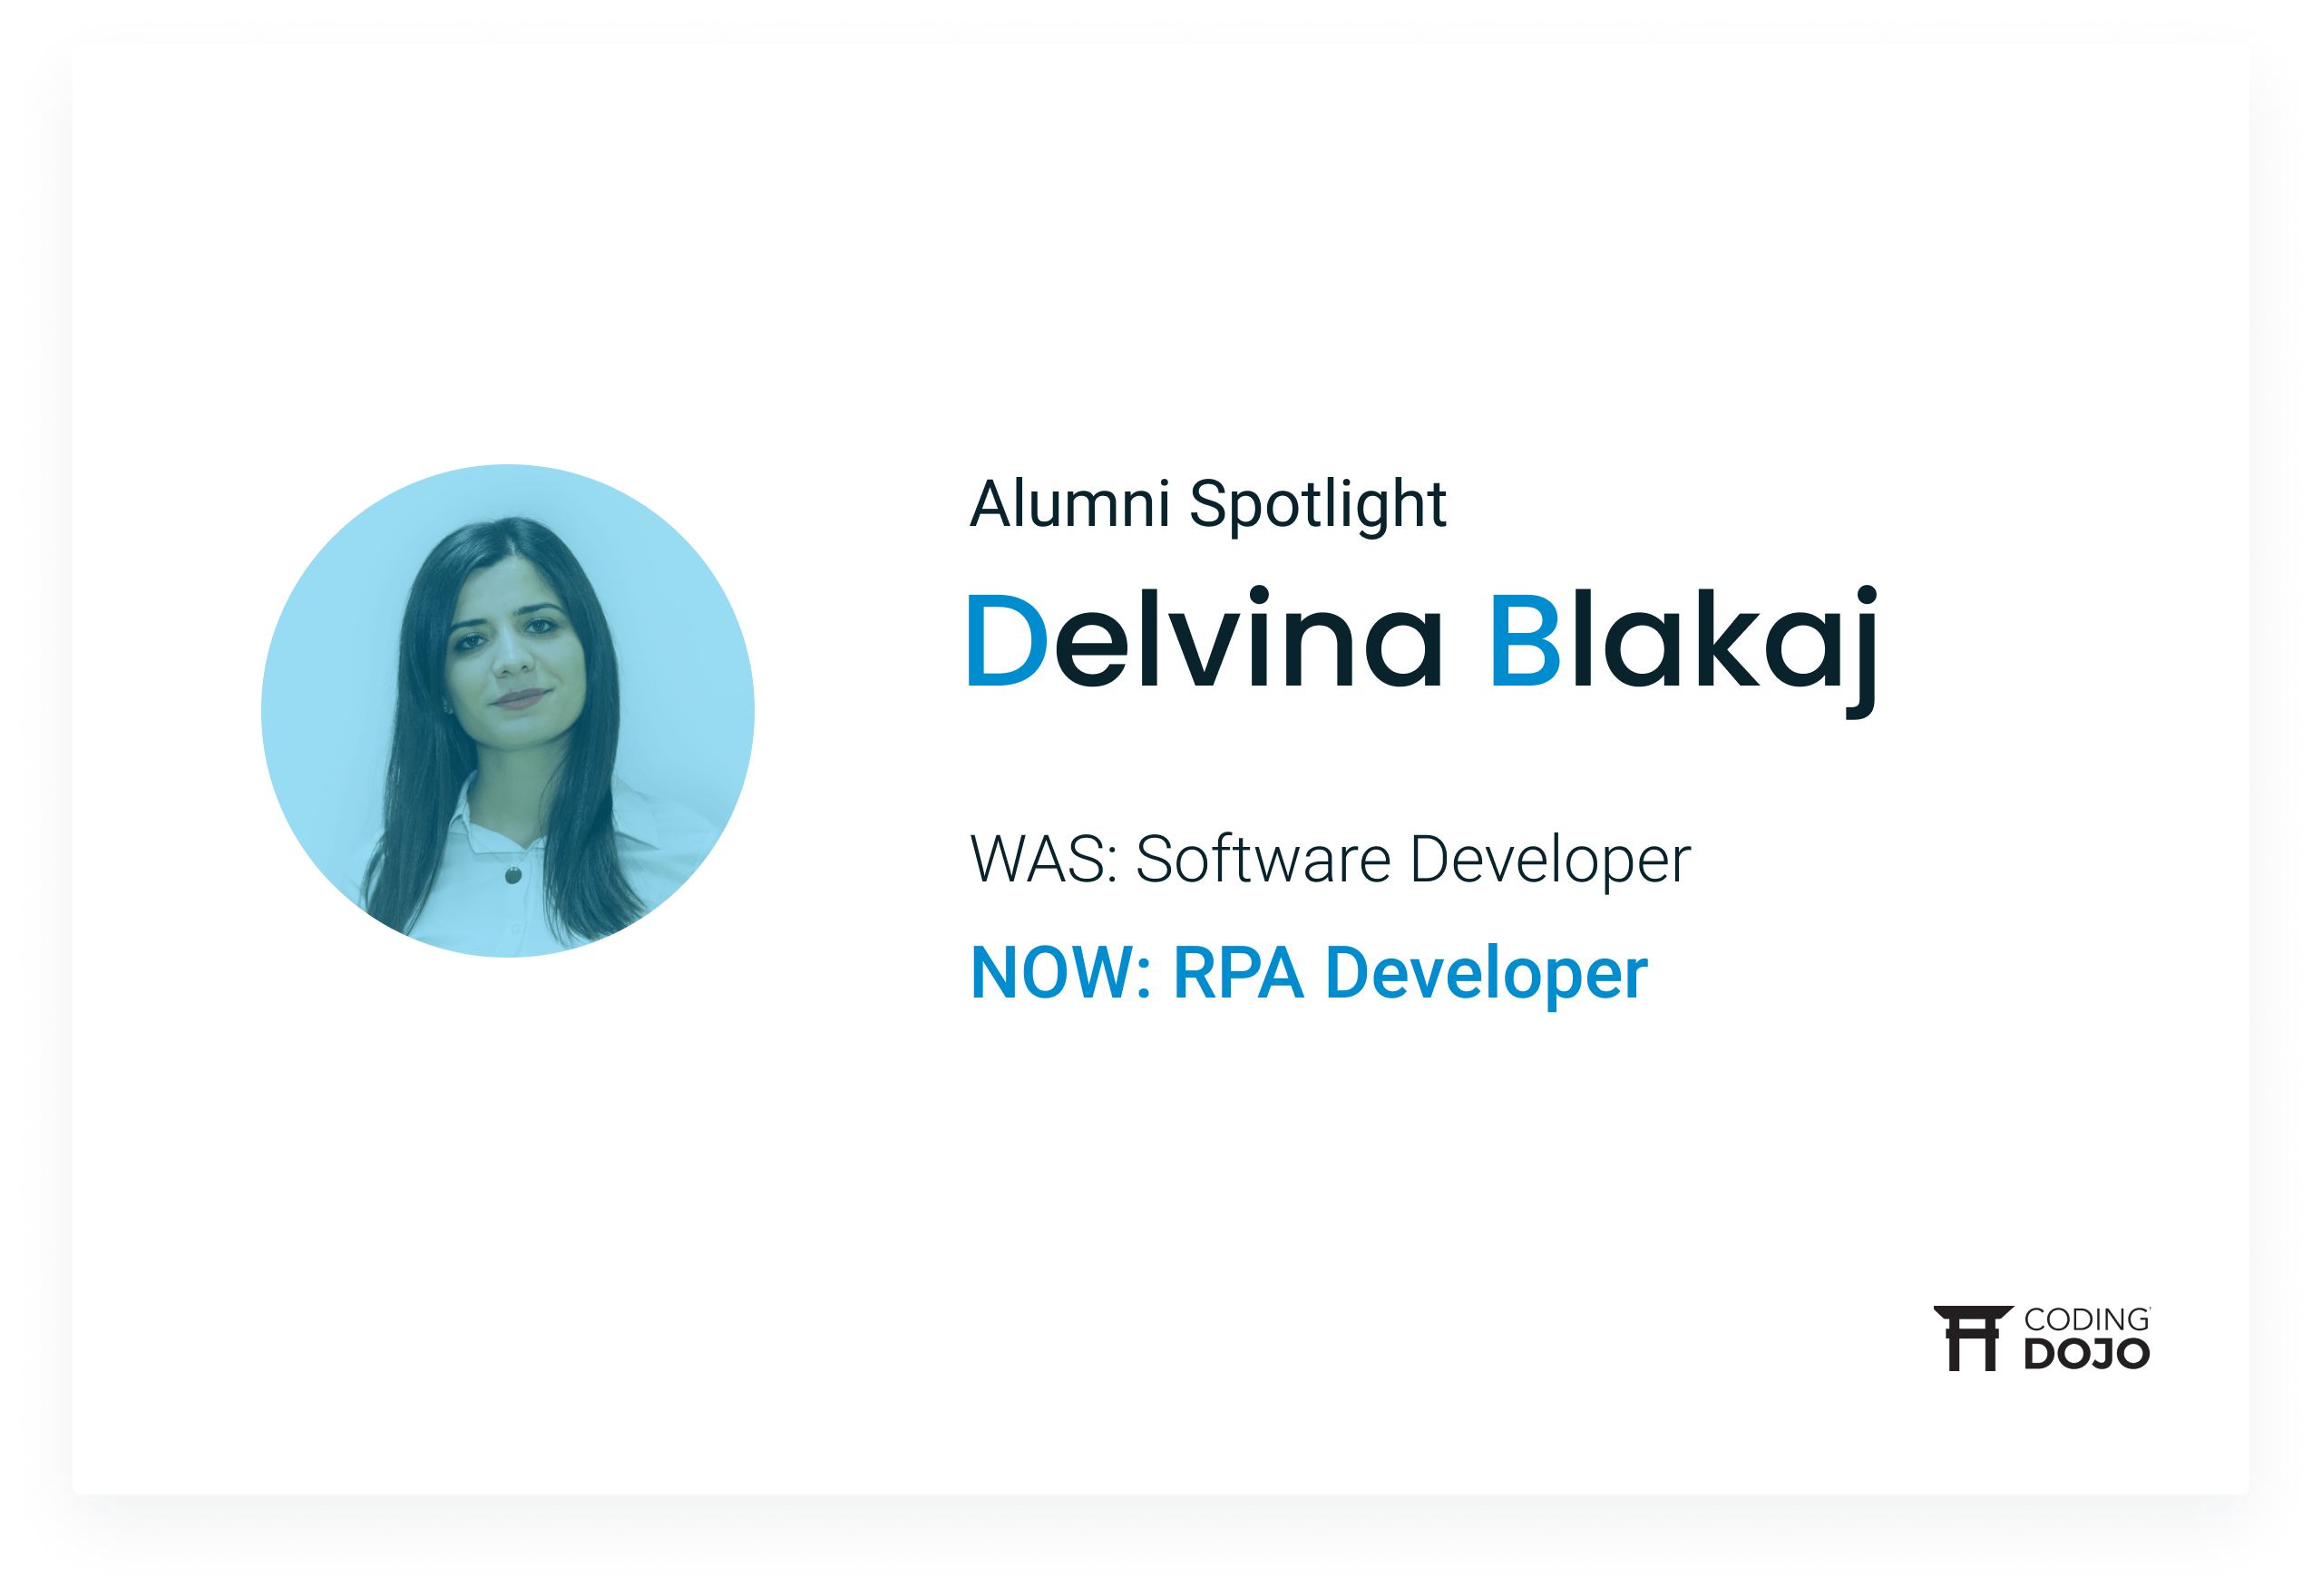 From Crawling Websites to Building Robots | How Online Part-Time Alumna Delvina Blakaj Upskilled Into a New Career